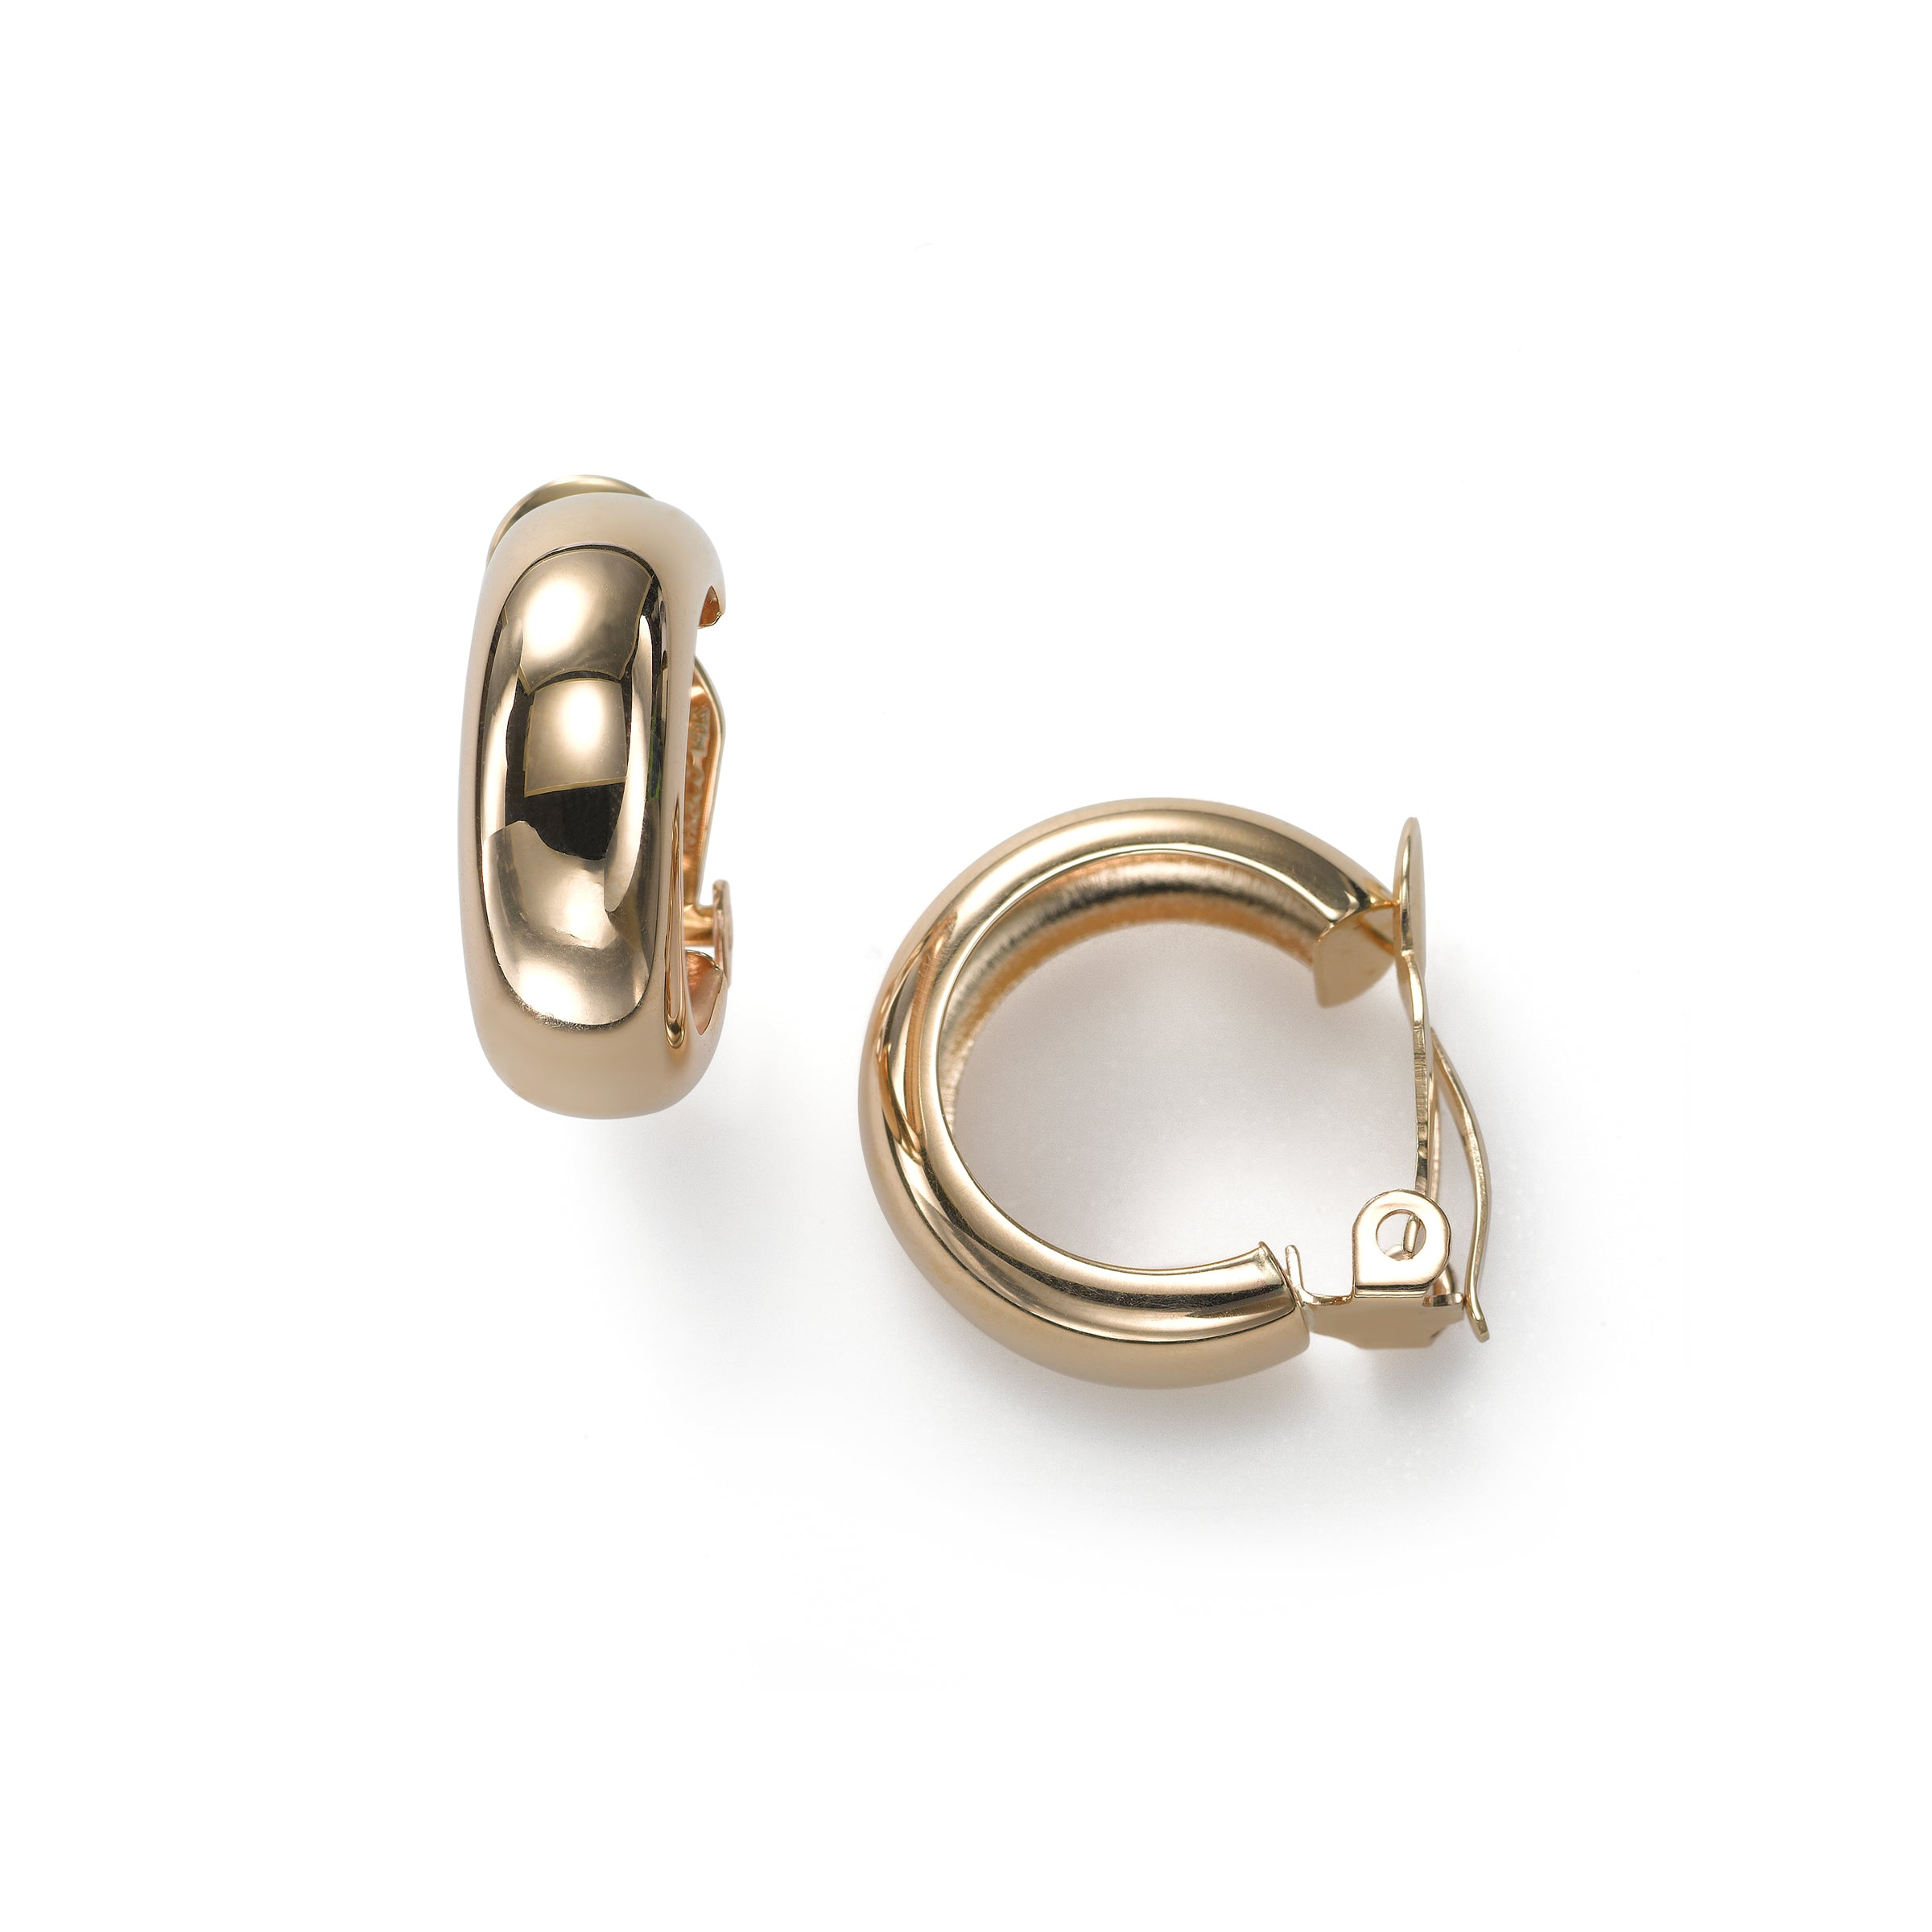 Puffy Rounded Hoop Earrings, Non-Pierced Clip, 14K Yellow Gold